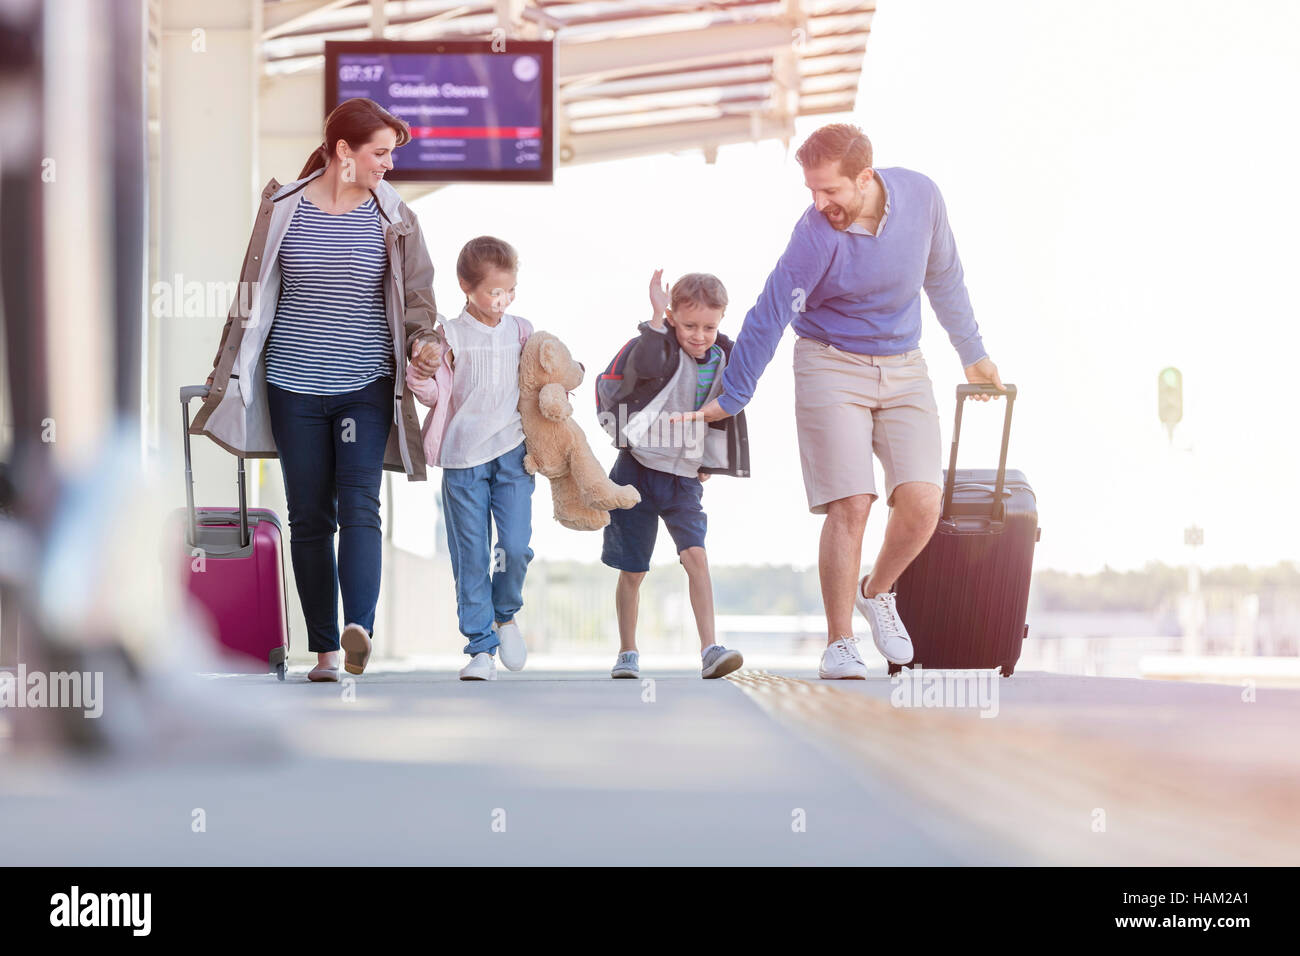 Family walking pulling suitcases at train station - Stock Image